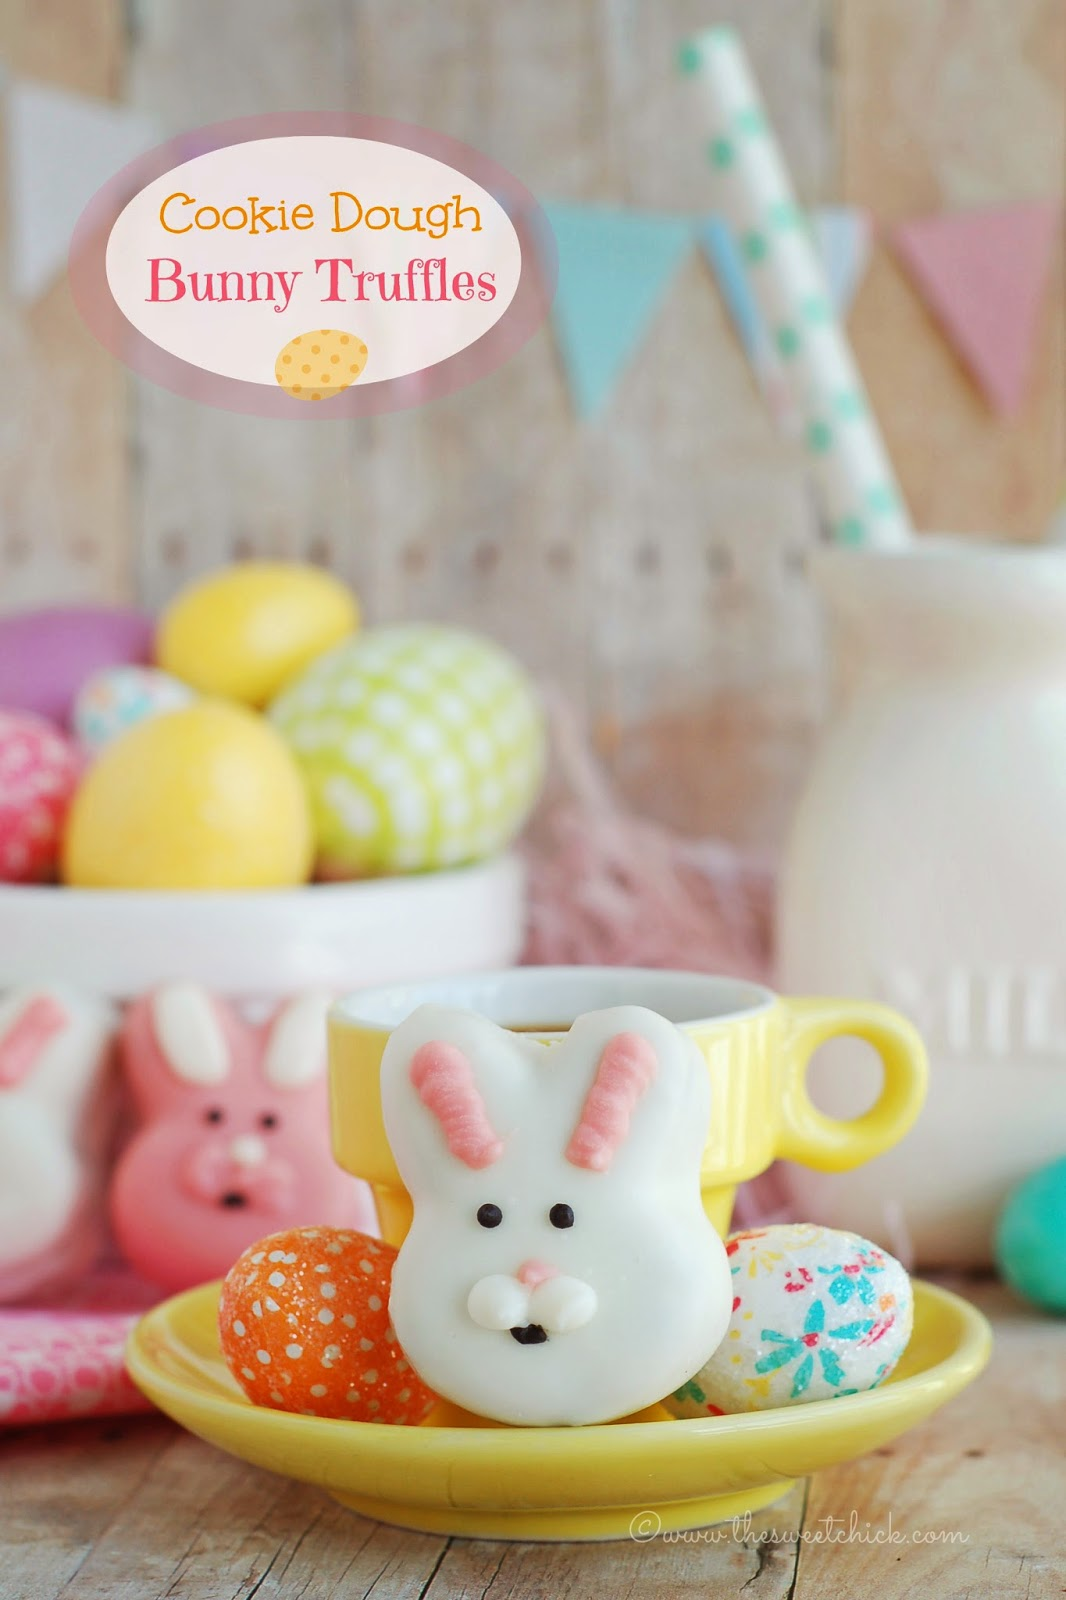 Cookie Dough Bunny Truffles by The Sweet Chick